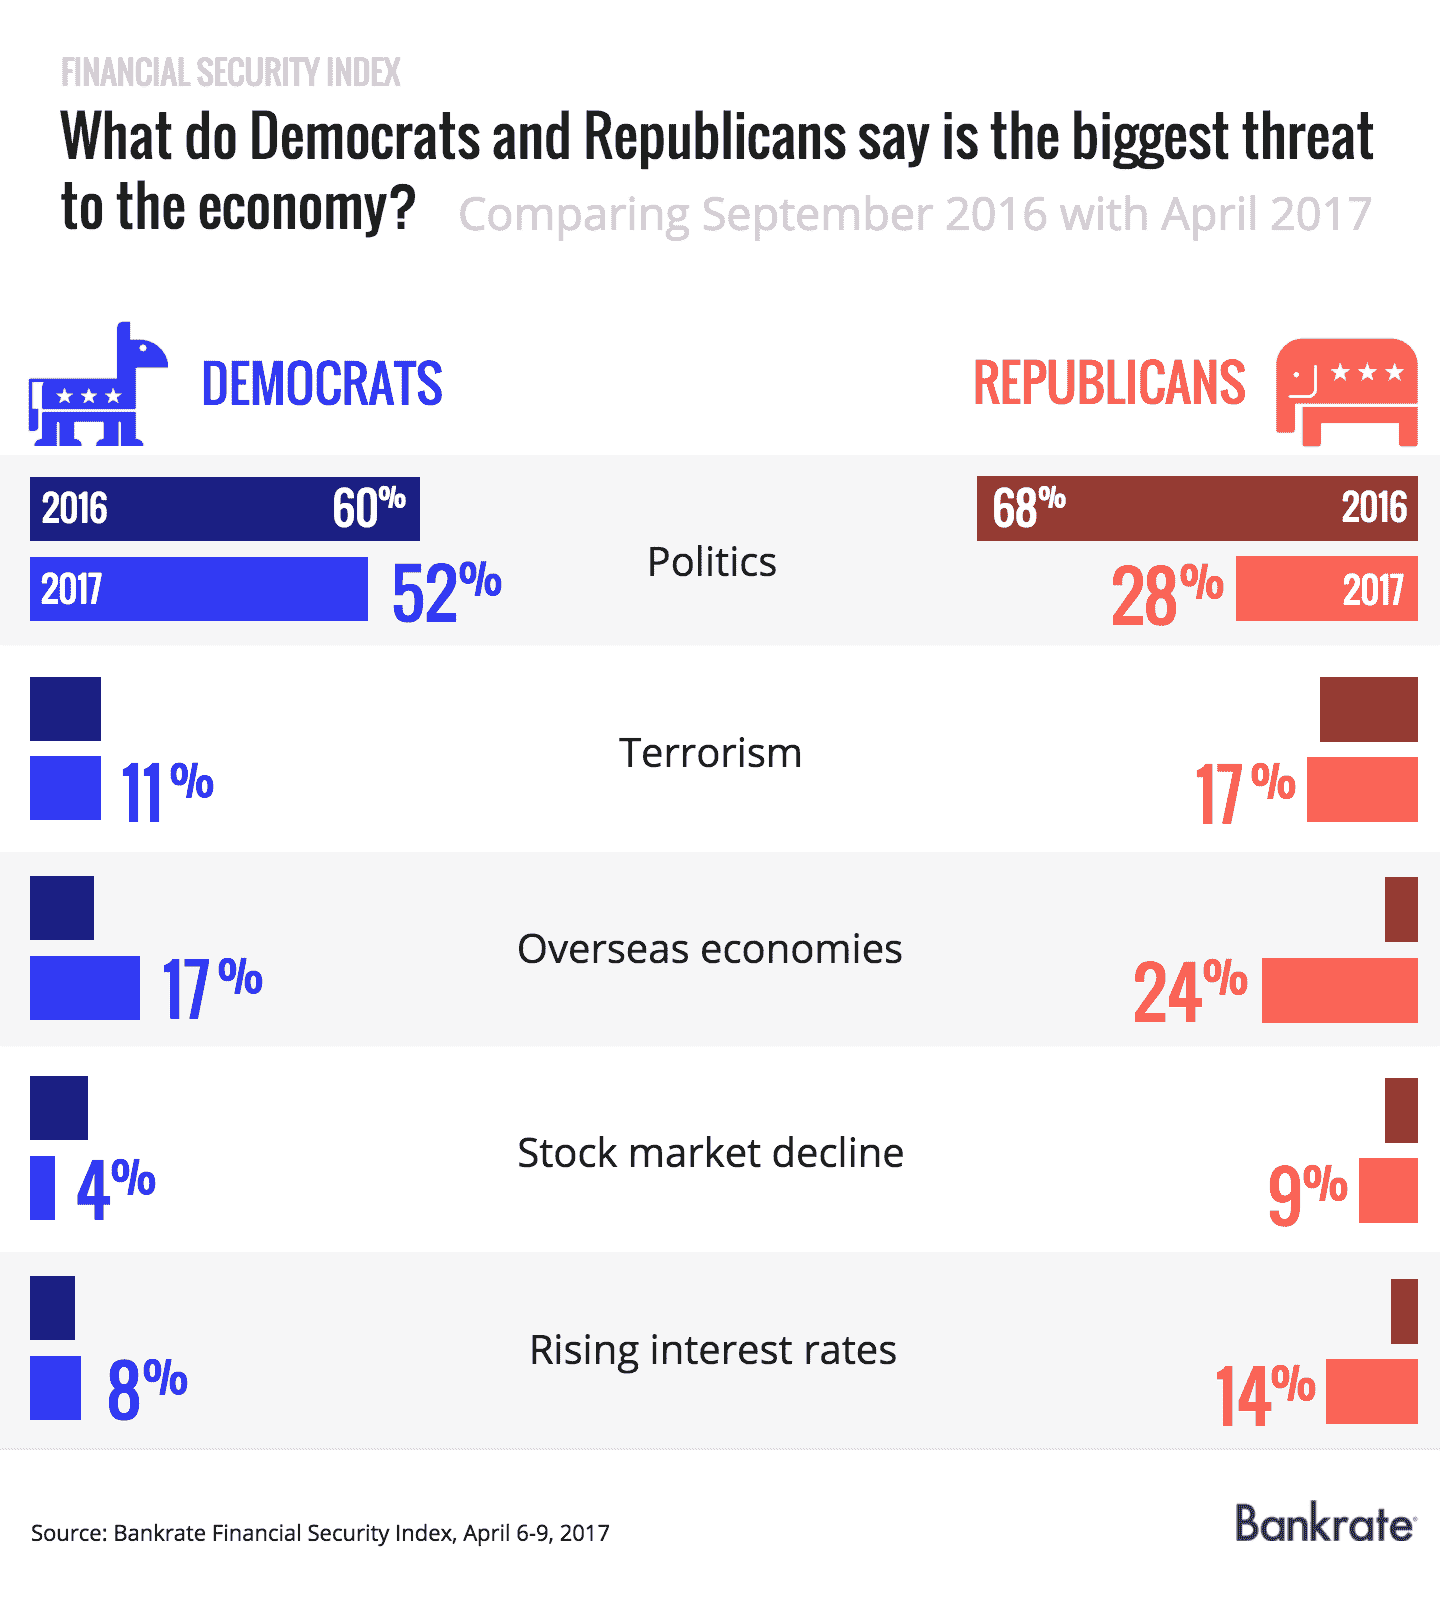 What do Democrats and Republicans say is the biggest threat to the economy?